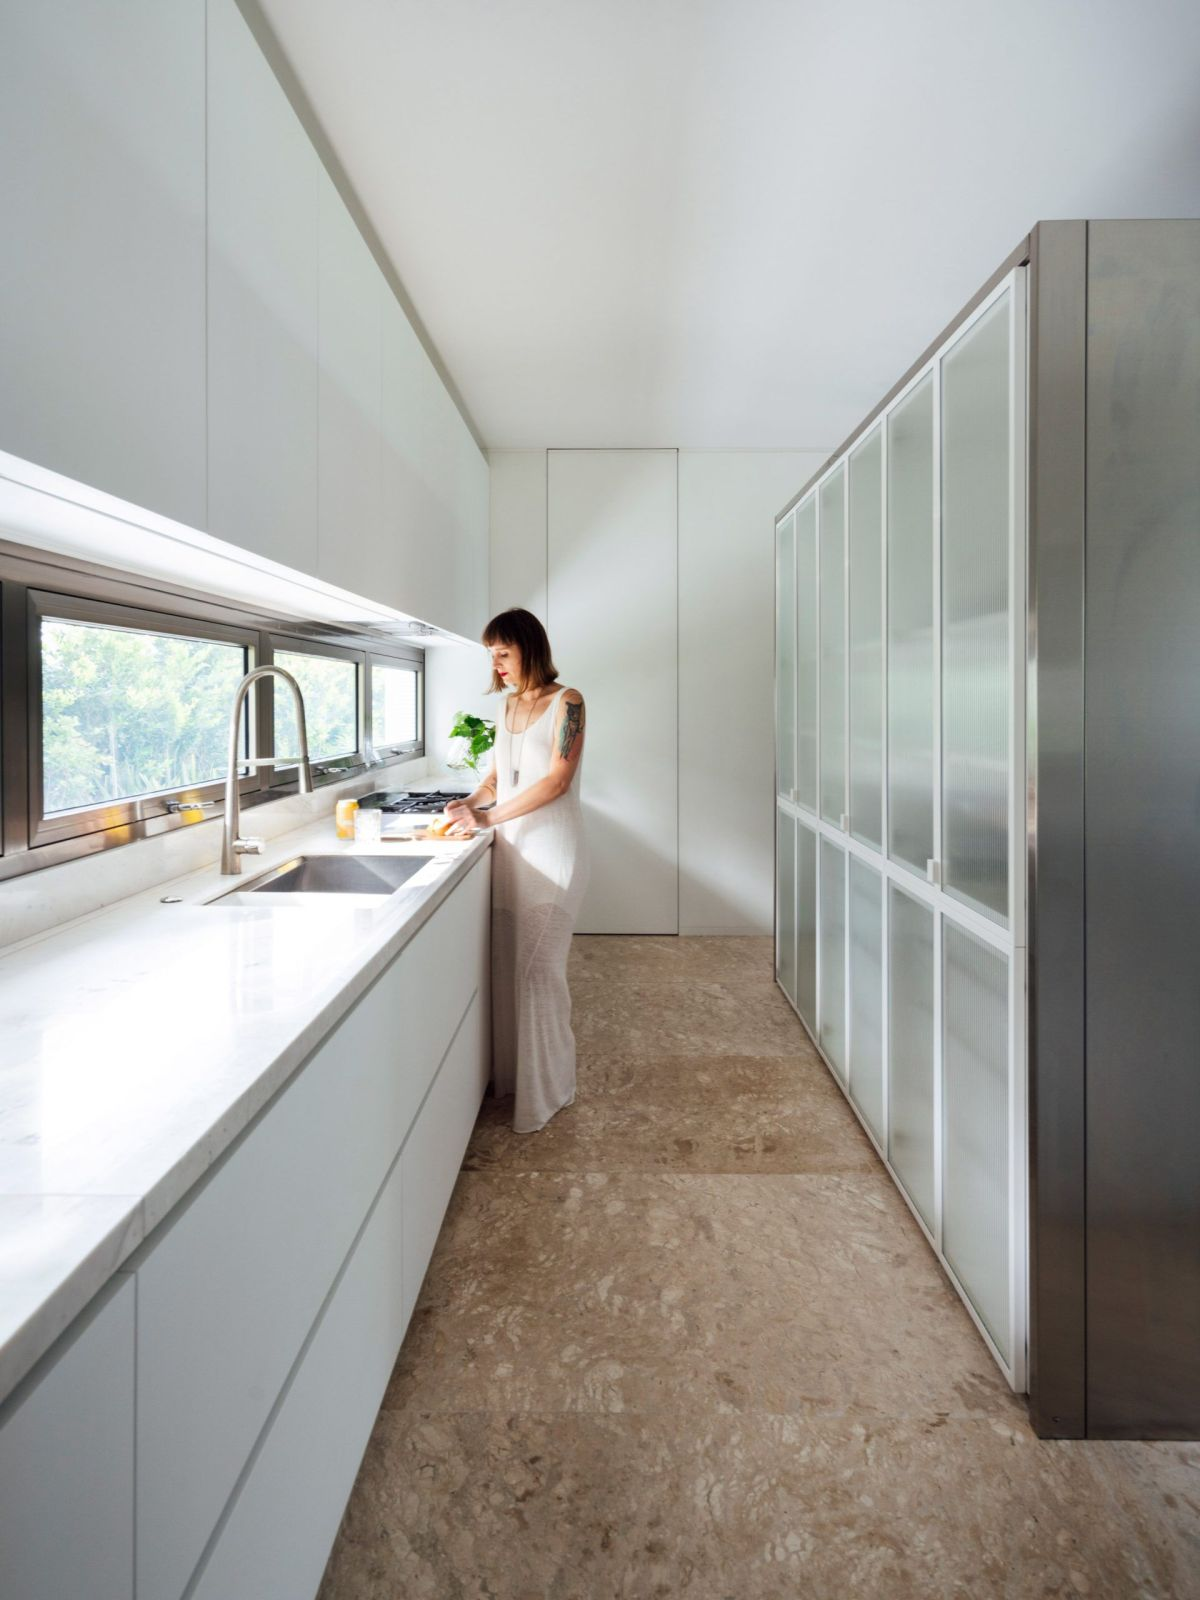 The kitchen is all white with metal accents and an earthy brown floor